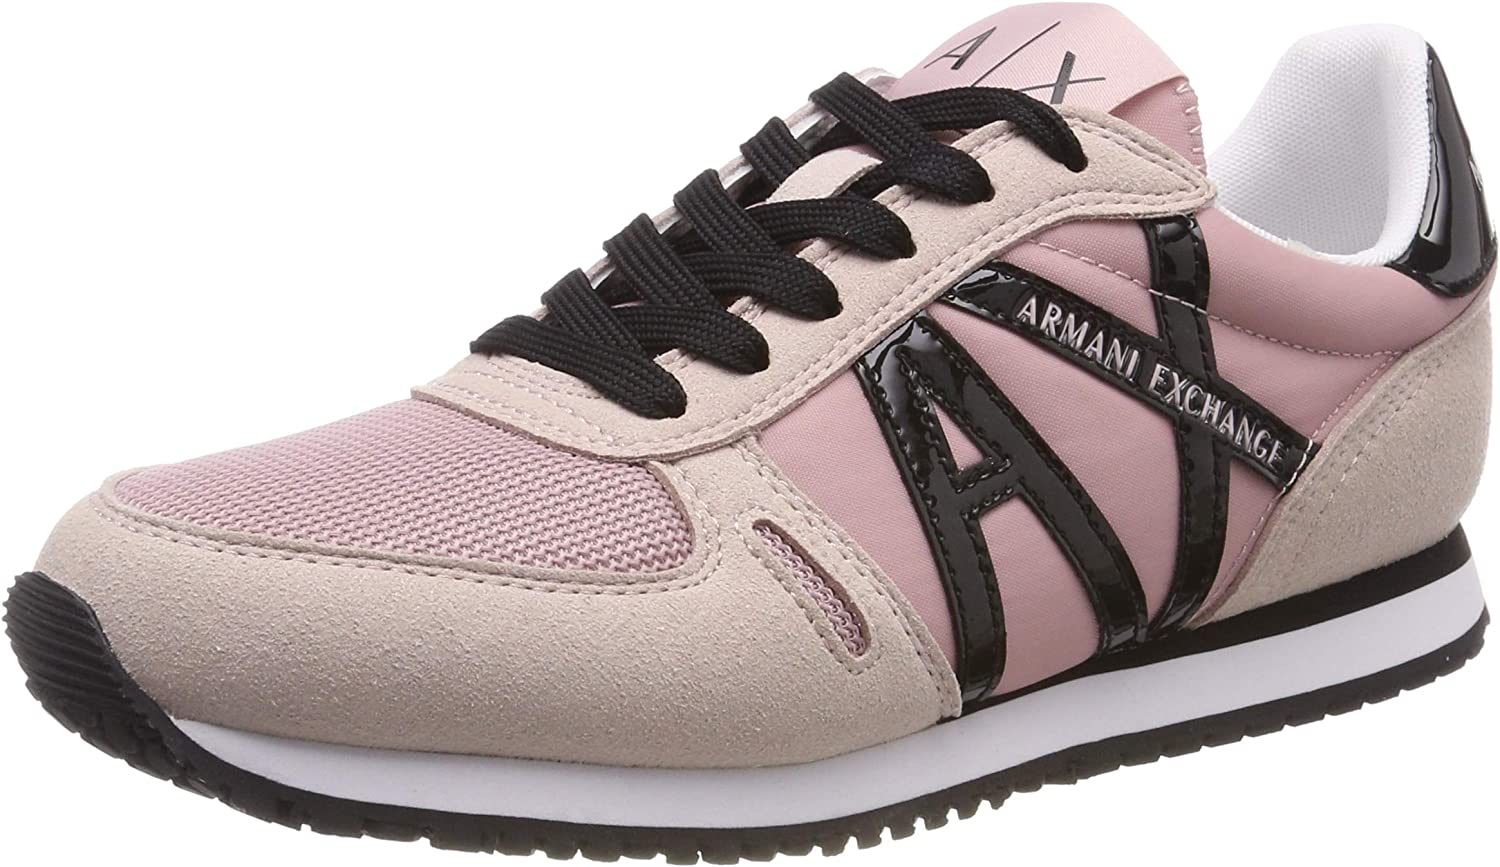 Armani Exchange Exchange Exchange Damen Microfiber Lace Up Turnschuhe  cda244